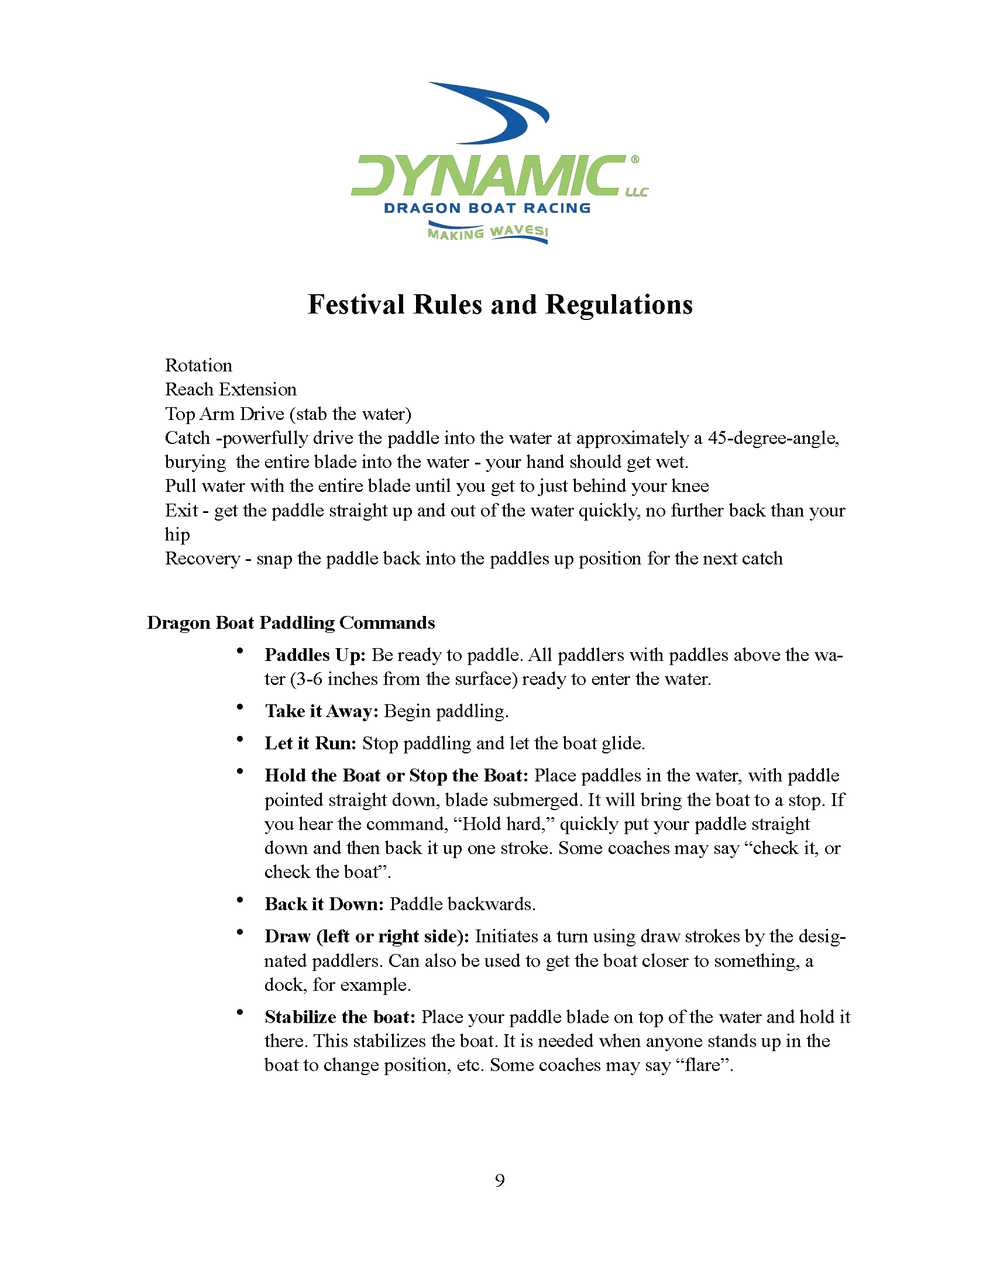 Dynamic_Festival_RulesRegulations_2019_Page_09.png